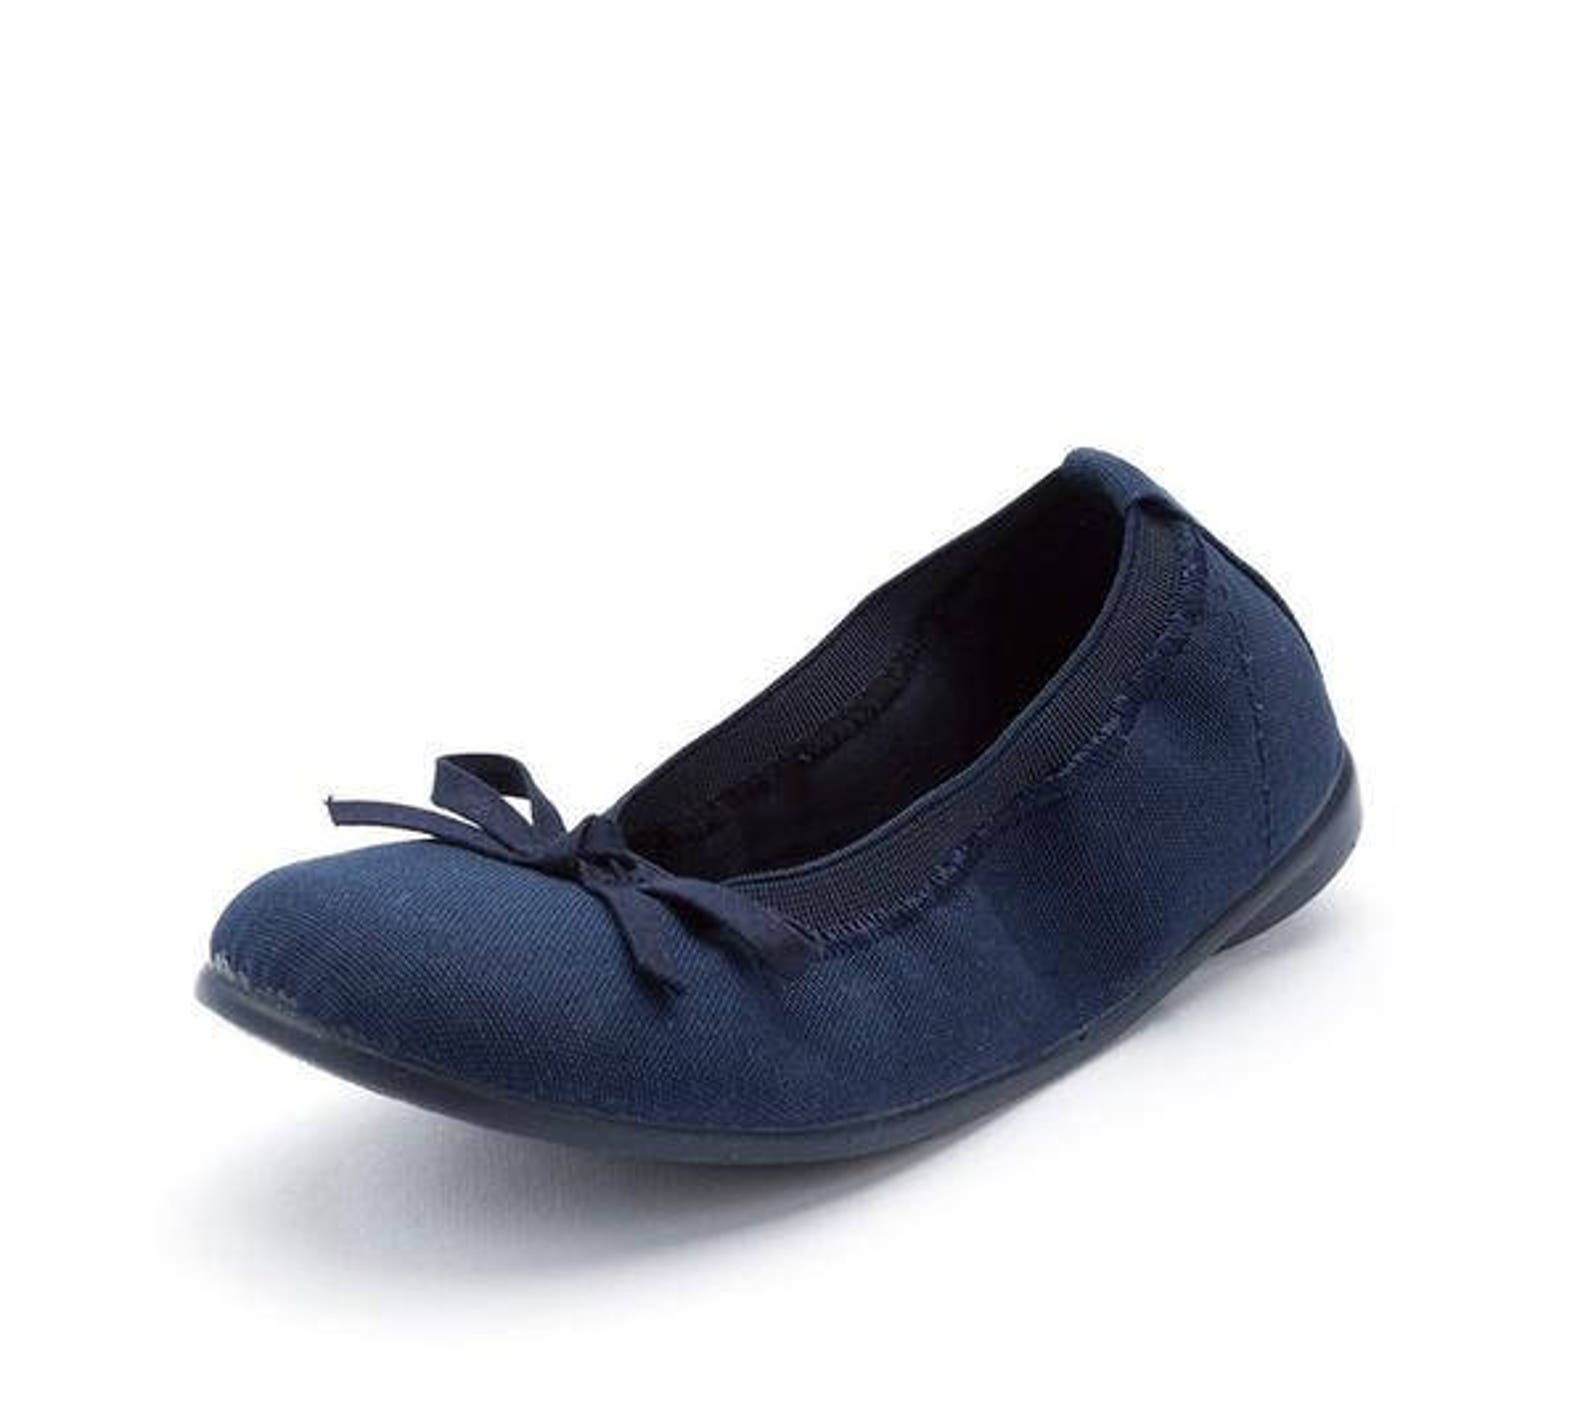 dark navy ballet flats with bow, girl shoes, toddler shoes, walker shoes, walker shoes for babies, girls ballet flats, baby shoe